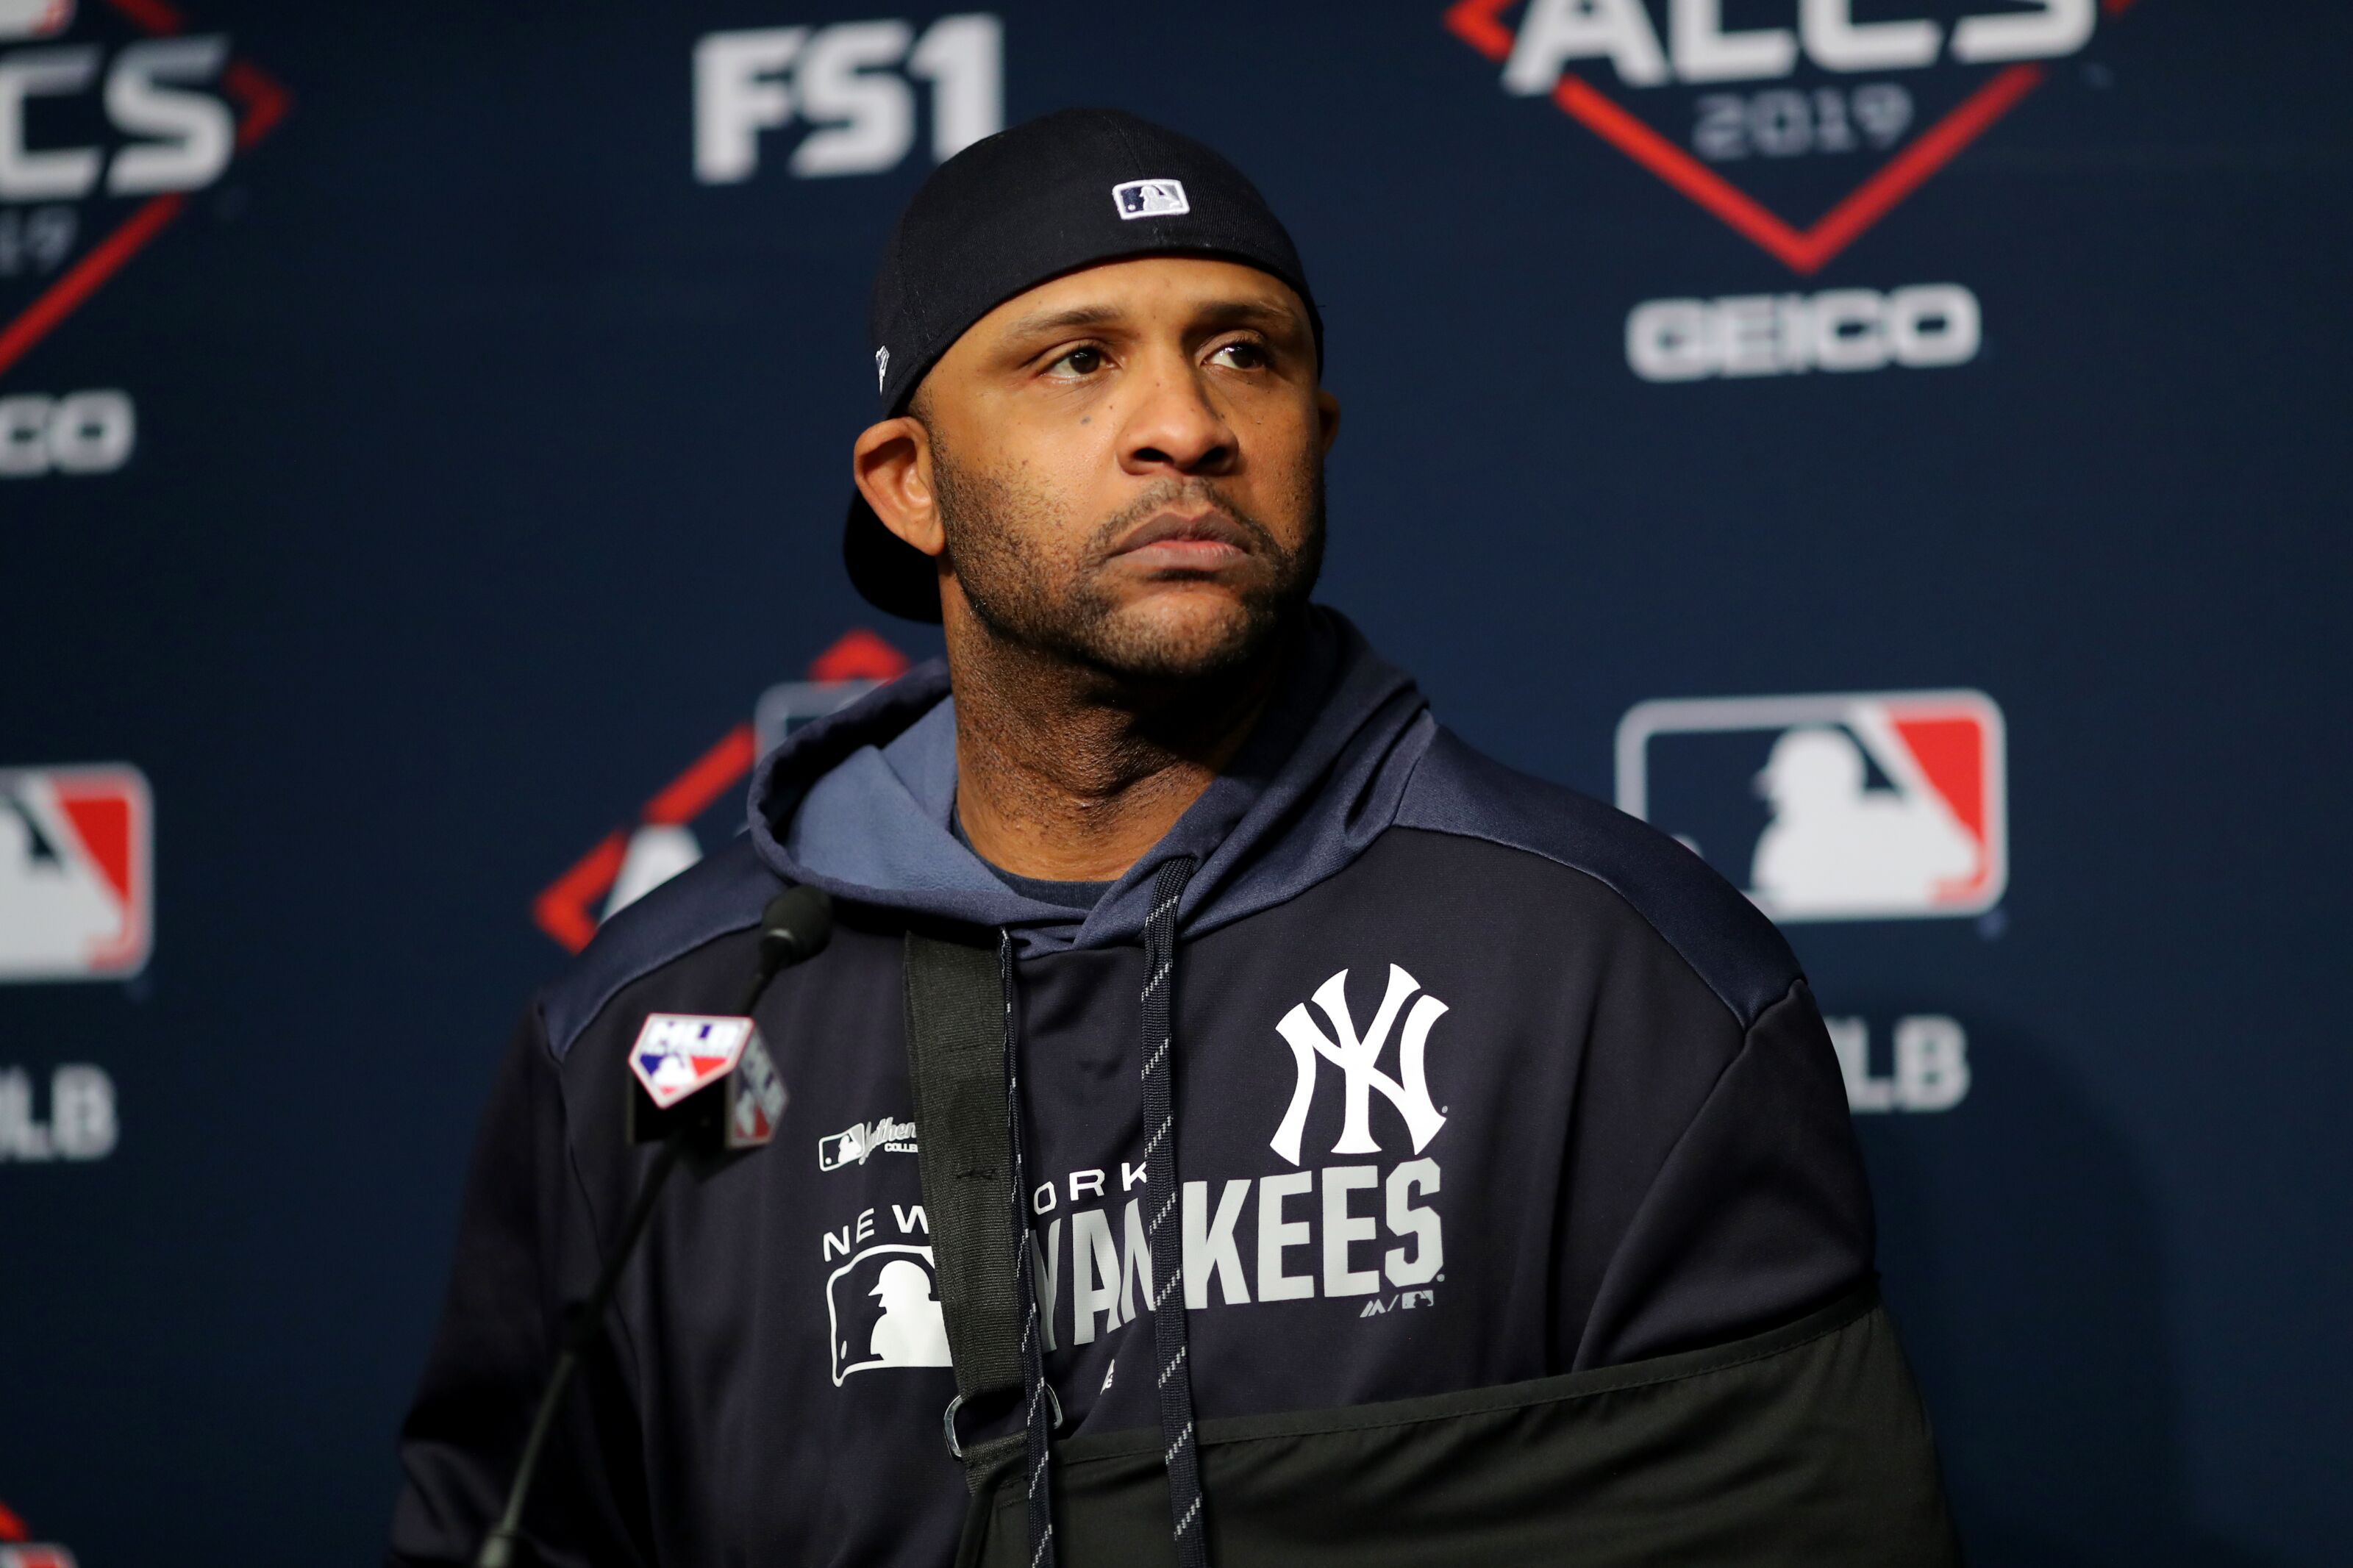 Yankees could be looking at big offseason changes